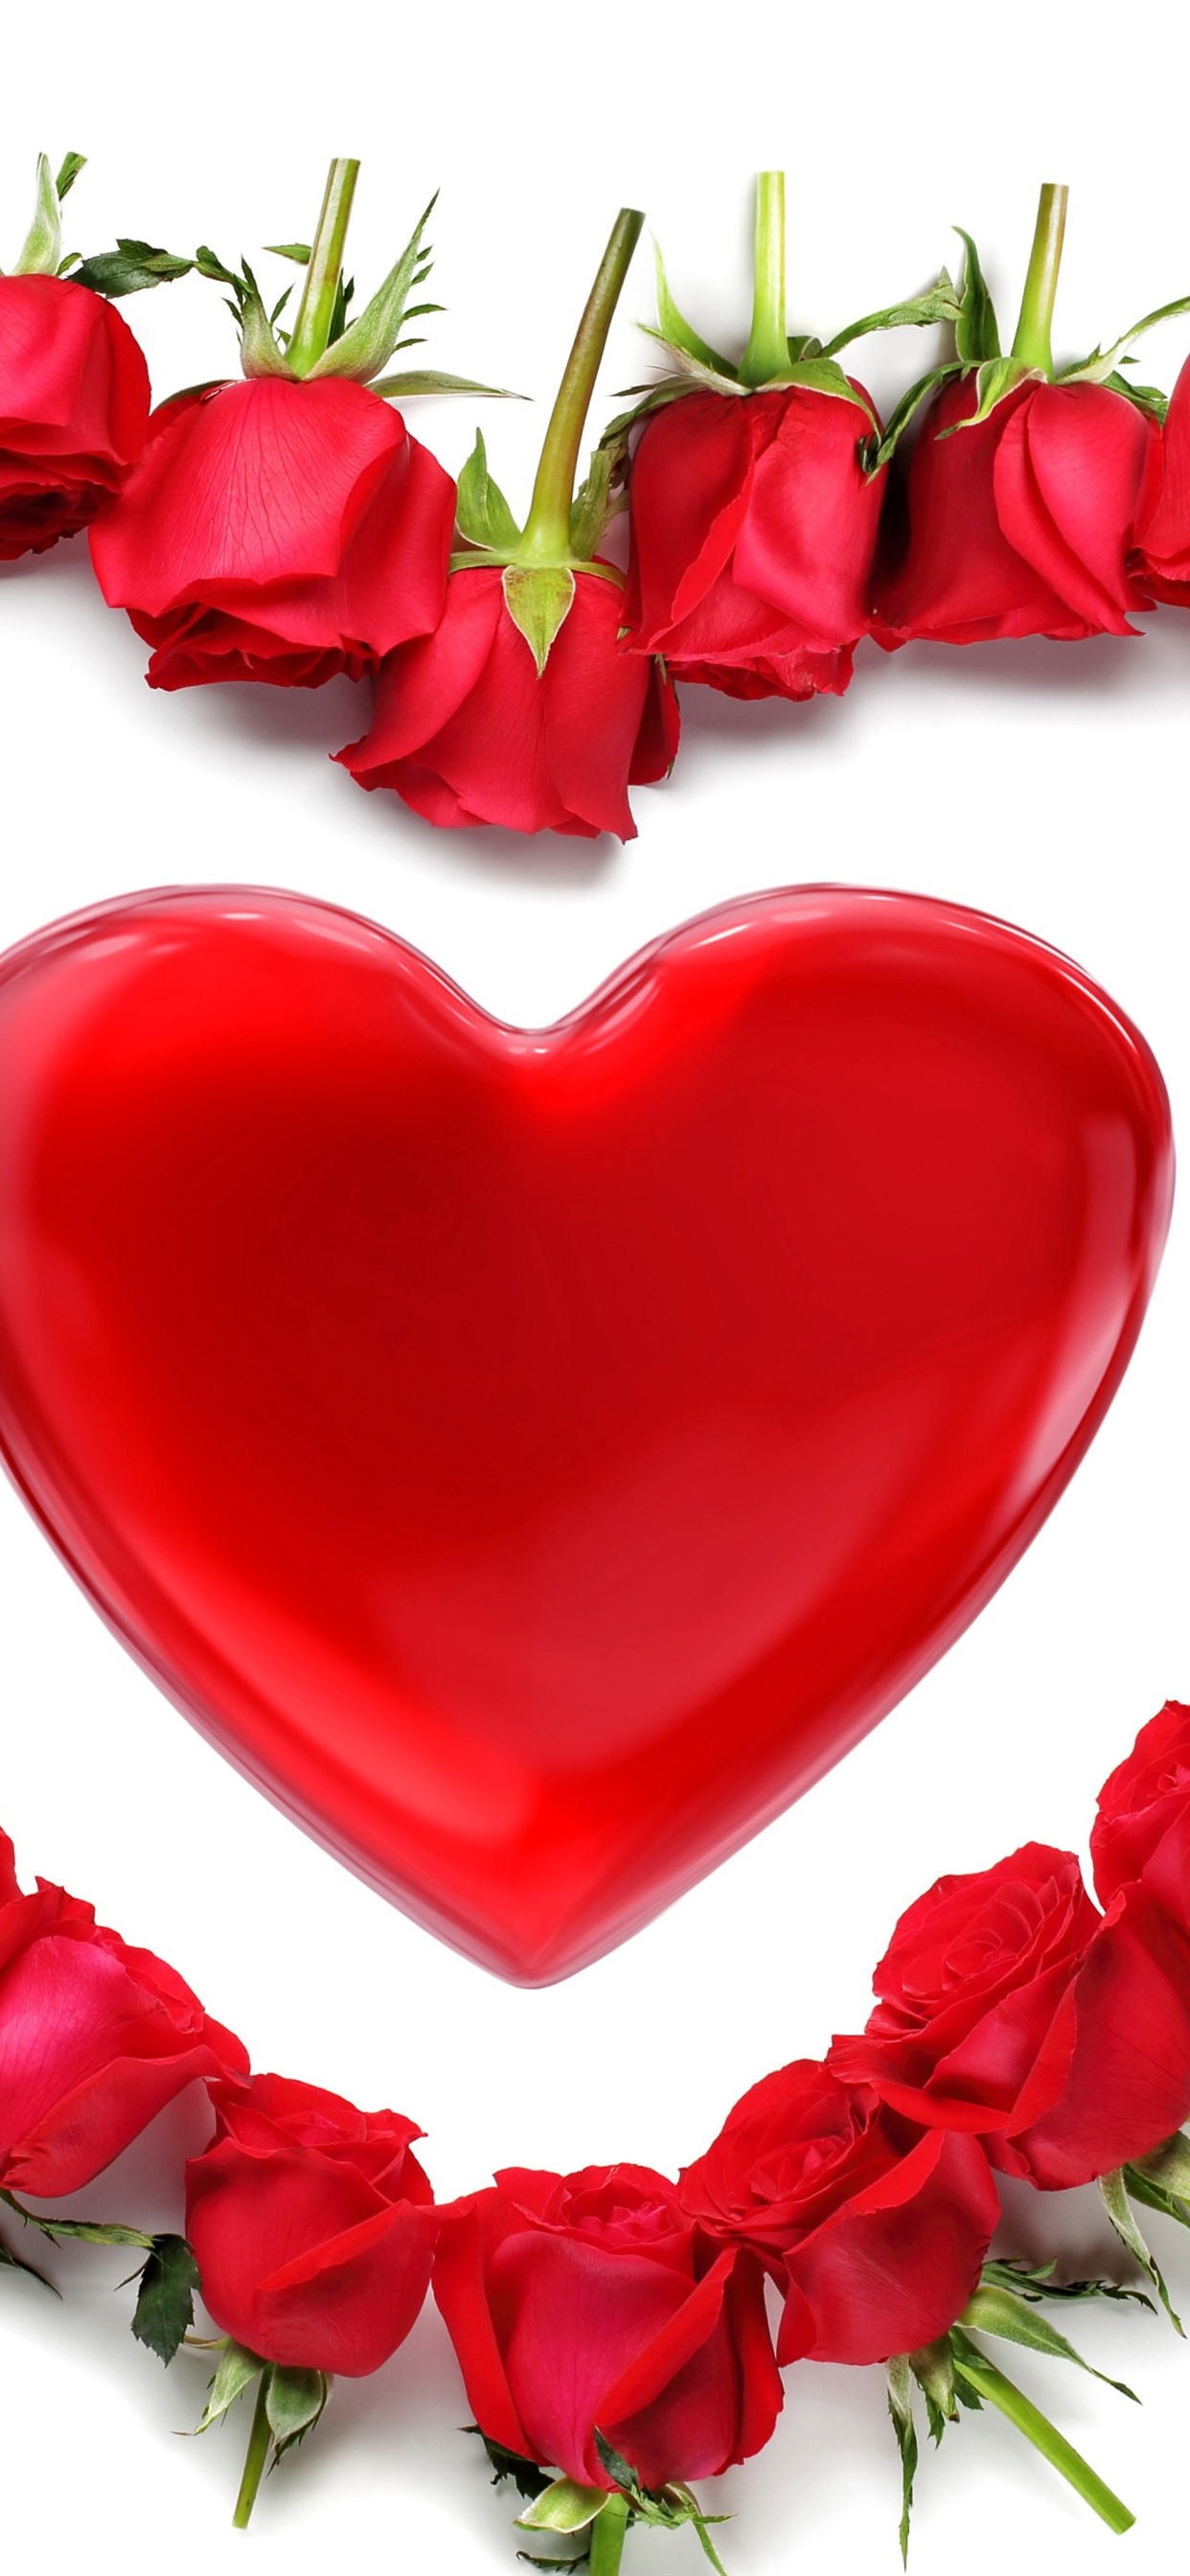 Red love heart roses white background